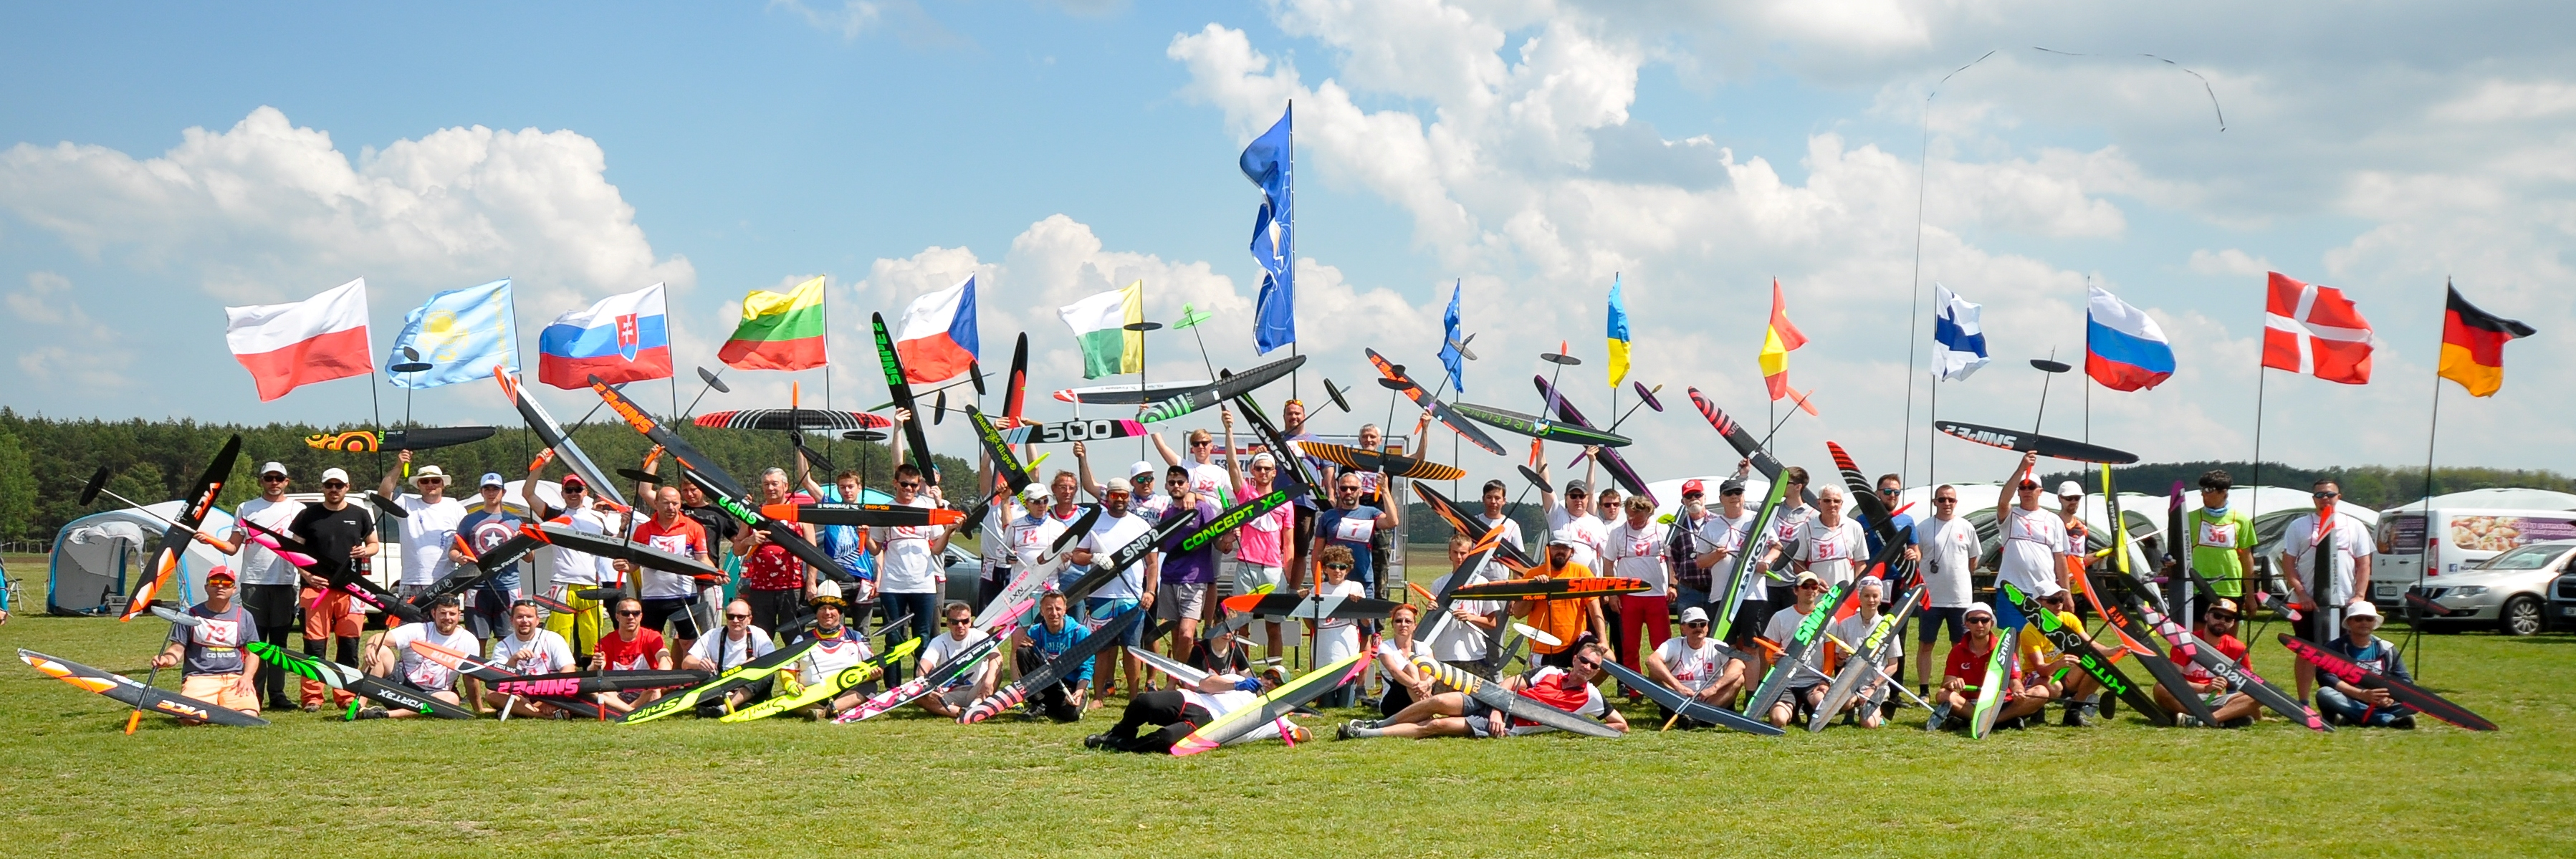 VII World Cup, IX Eurotour Contest F3K